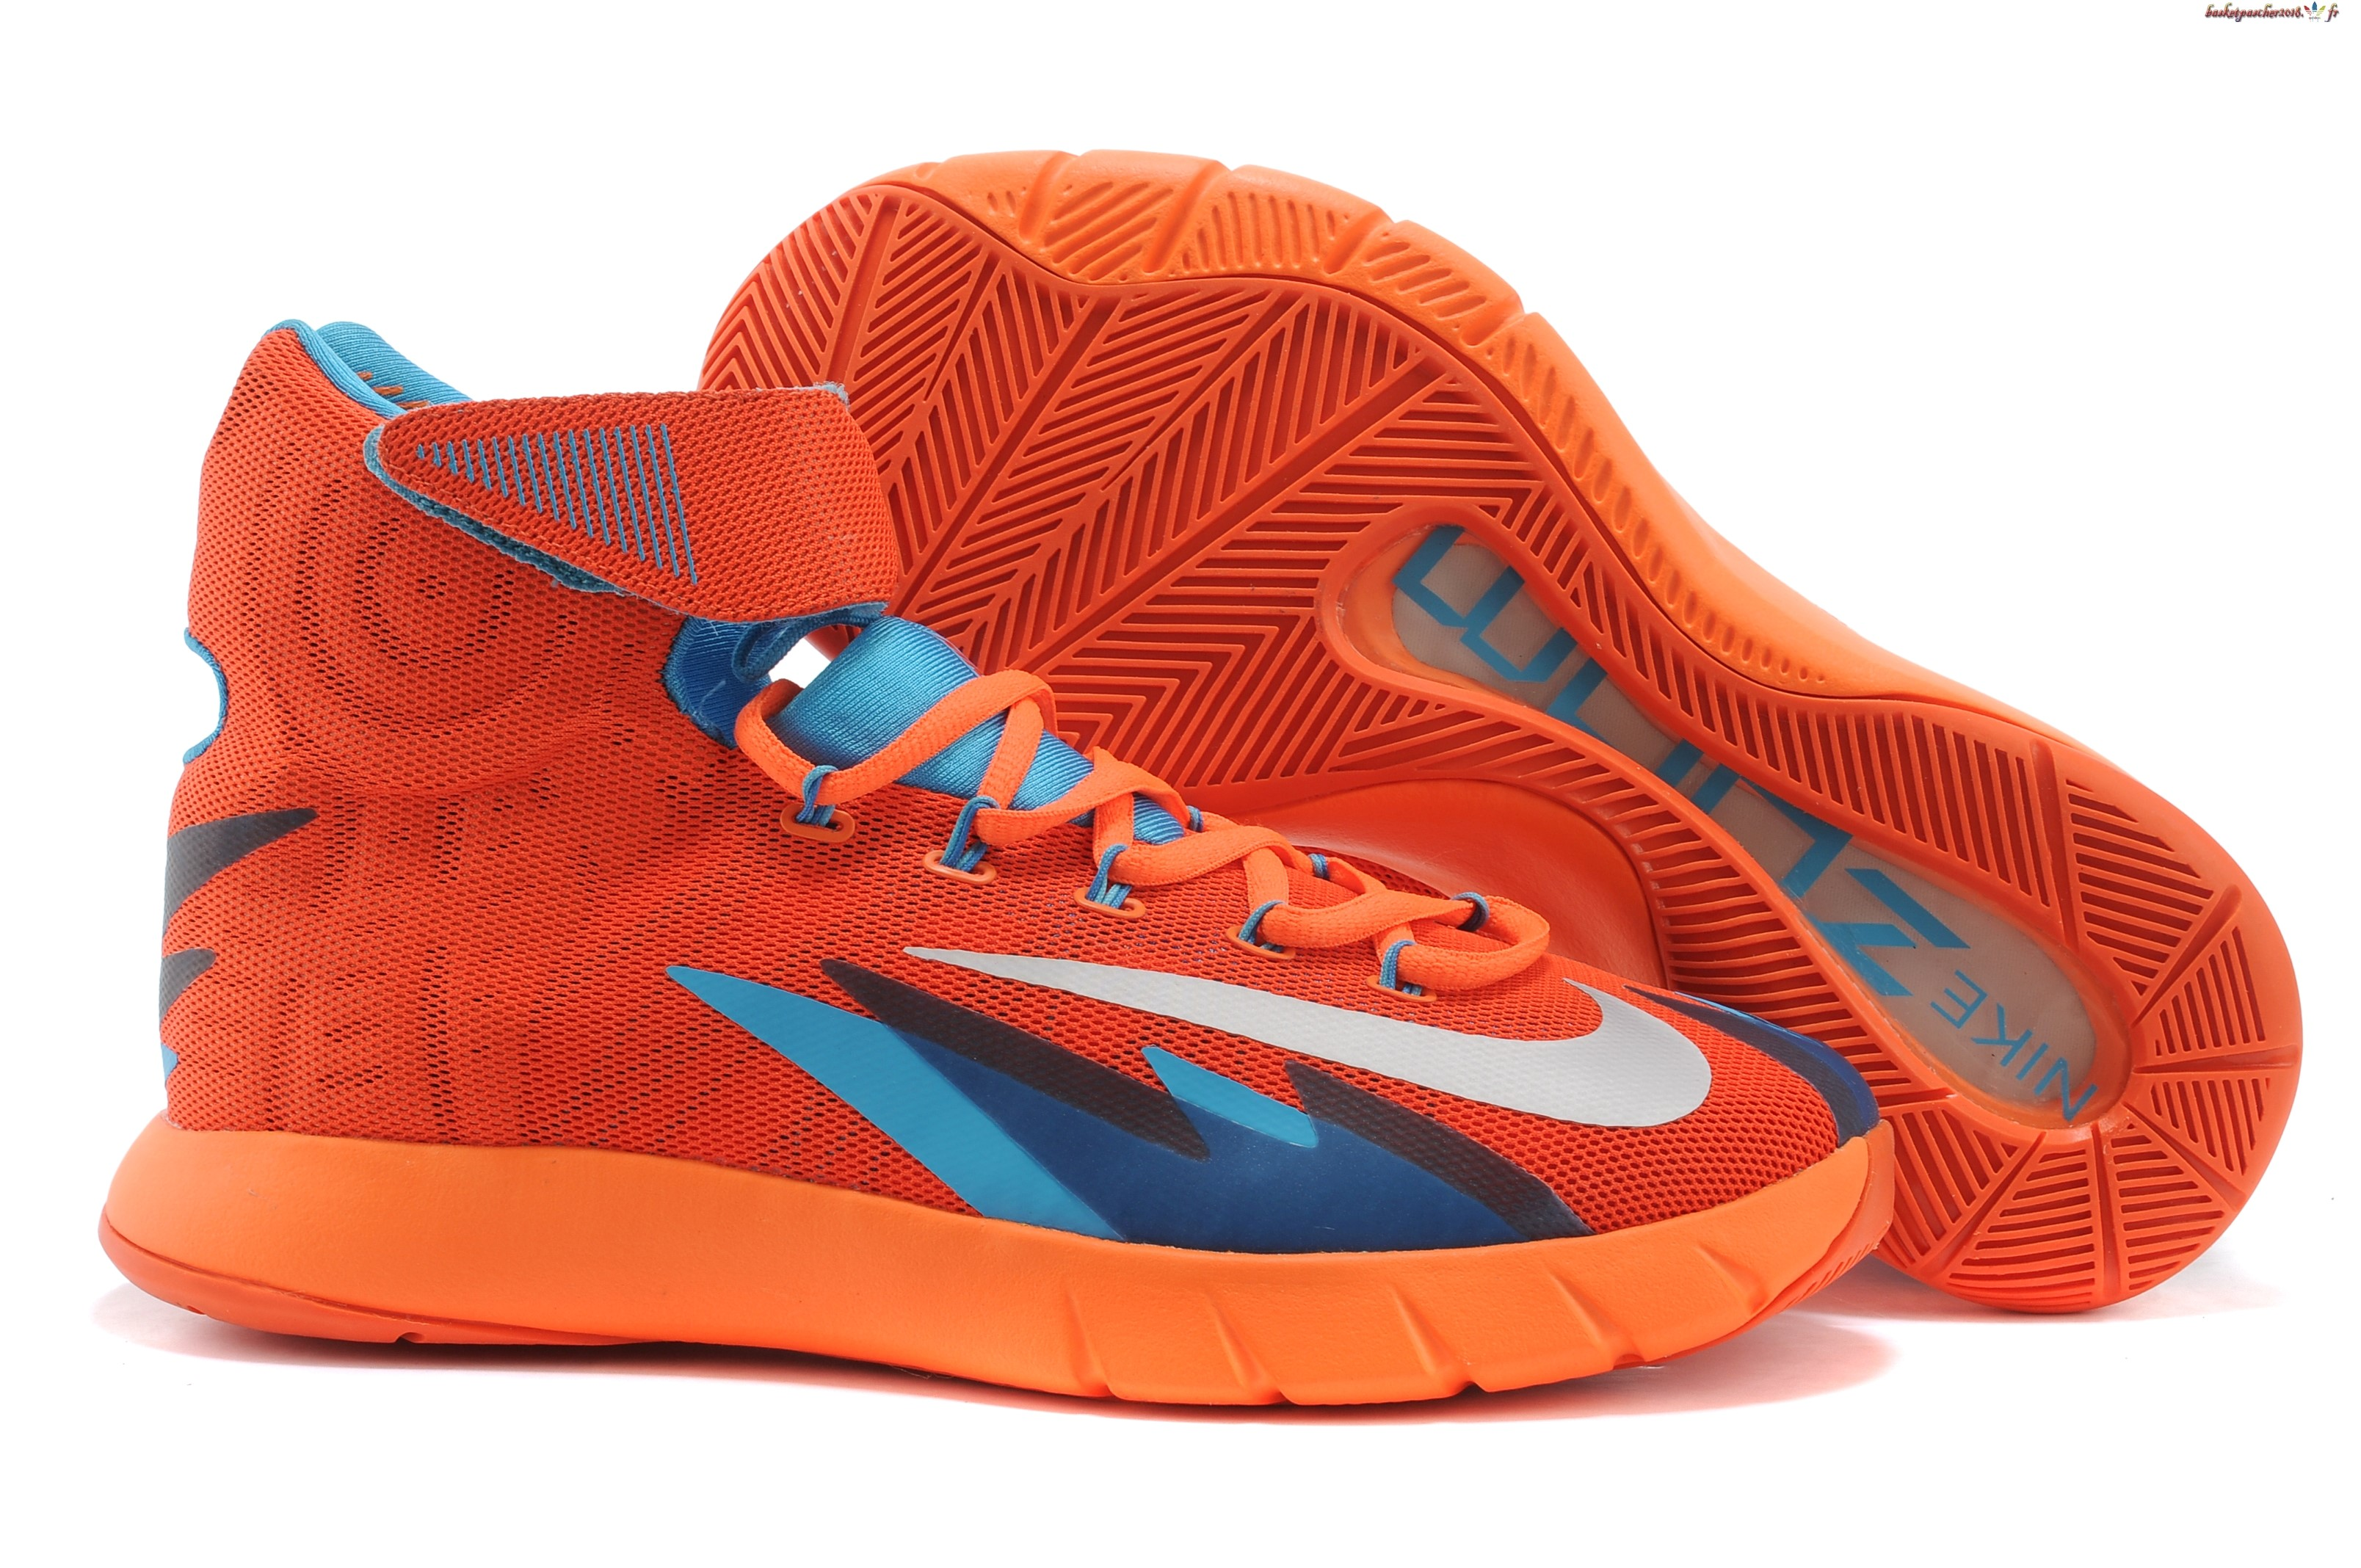 Vente Chaude Chaussures De Basketball Homme Nike Zoom Hyperrev Kyrie Irving Orange Gris Pas Cher